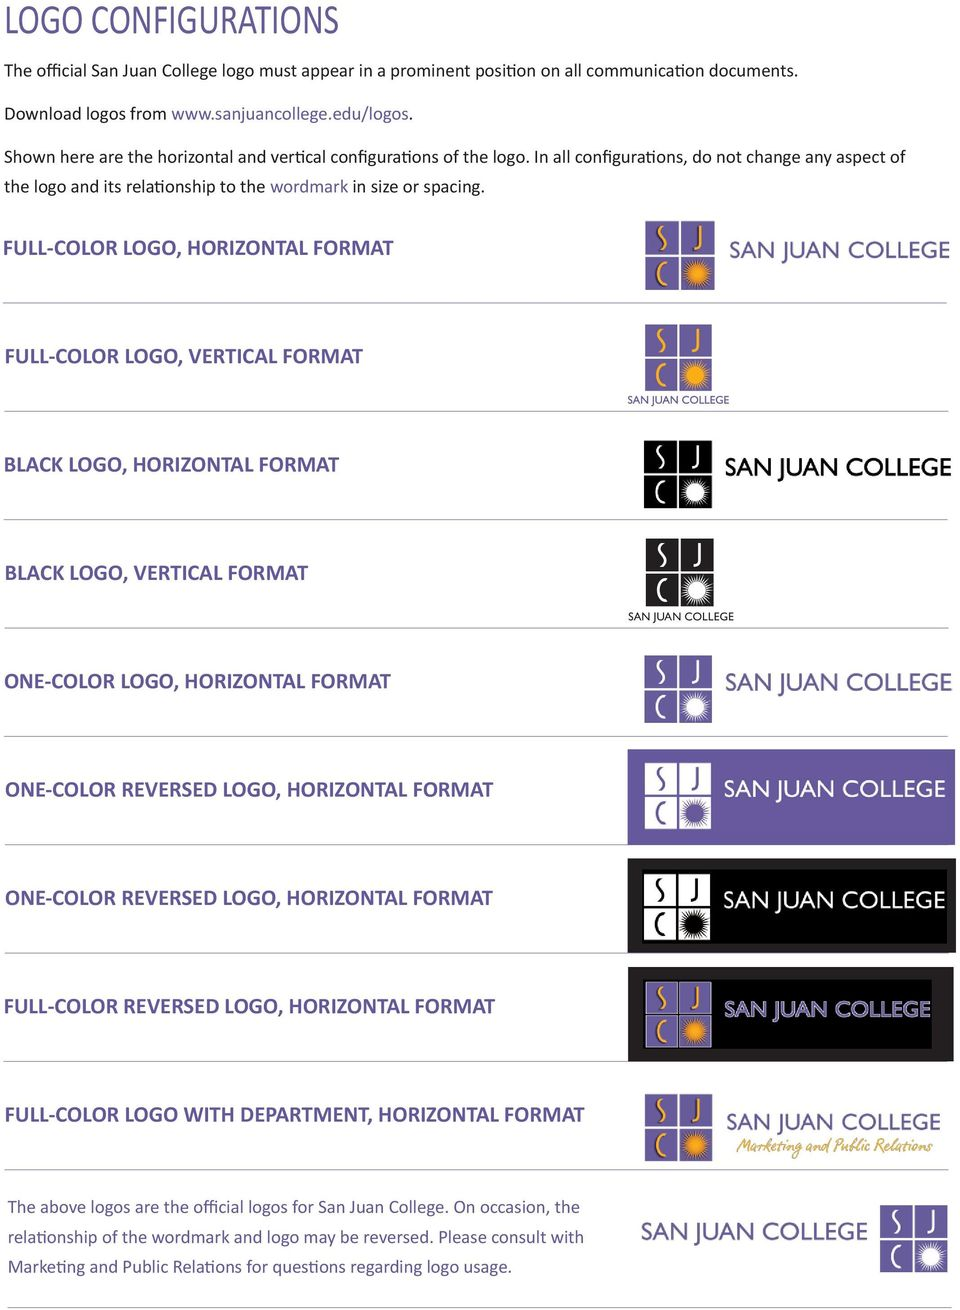 FULL-COLOR LOGO, HORIZONTAL FORMAT FULL-COLOR LOGO, VERTICAL FORMAT BLACK LOGO, HORIZONTAL FORMAT BLACK LOGO, VERTICAL FORMAT SAN JUAN COLLEGE Advising and Counseling Center ONE-COLOR LOGO,